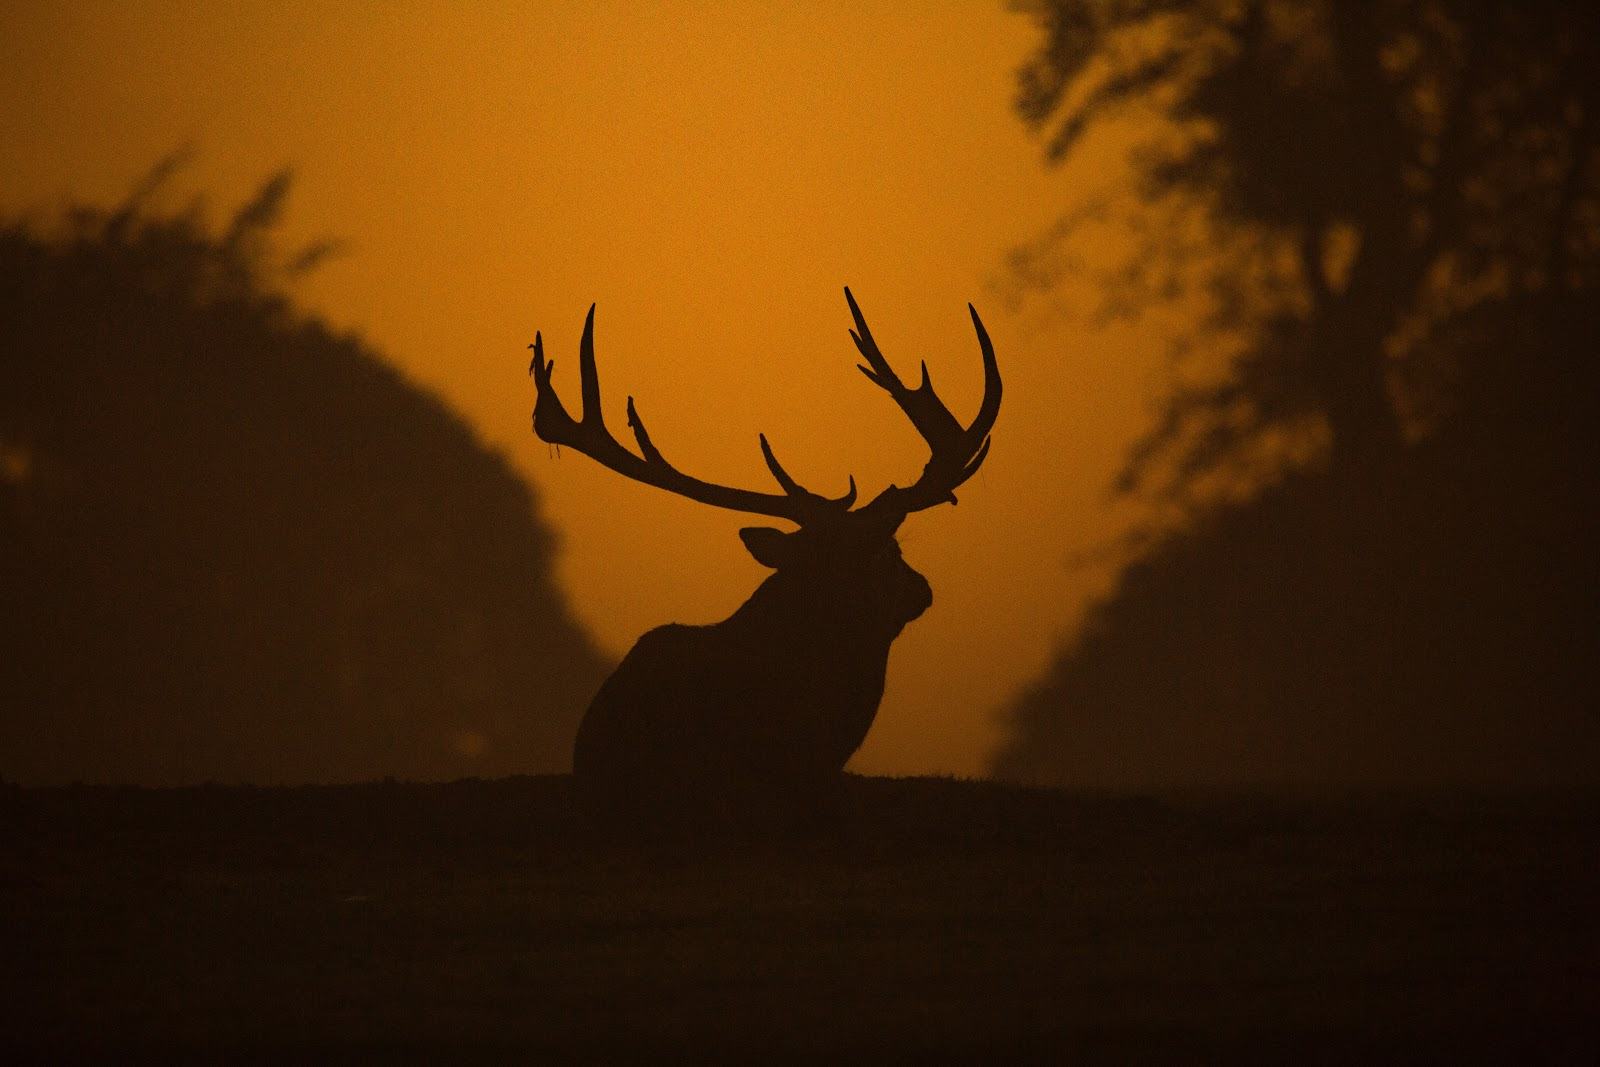 Shadow outline of an animal with antlers against an orange sky background